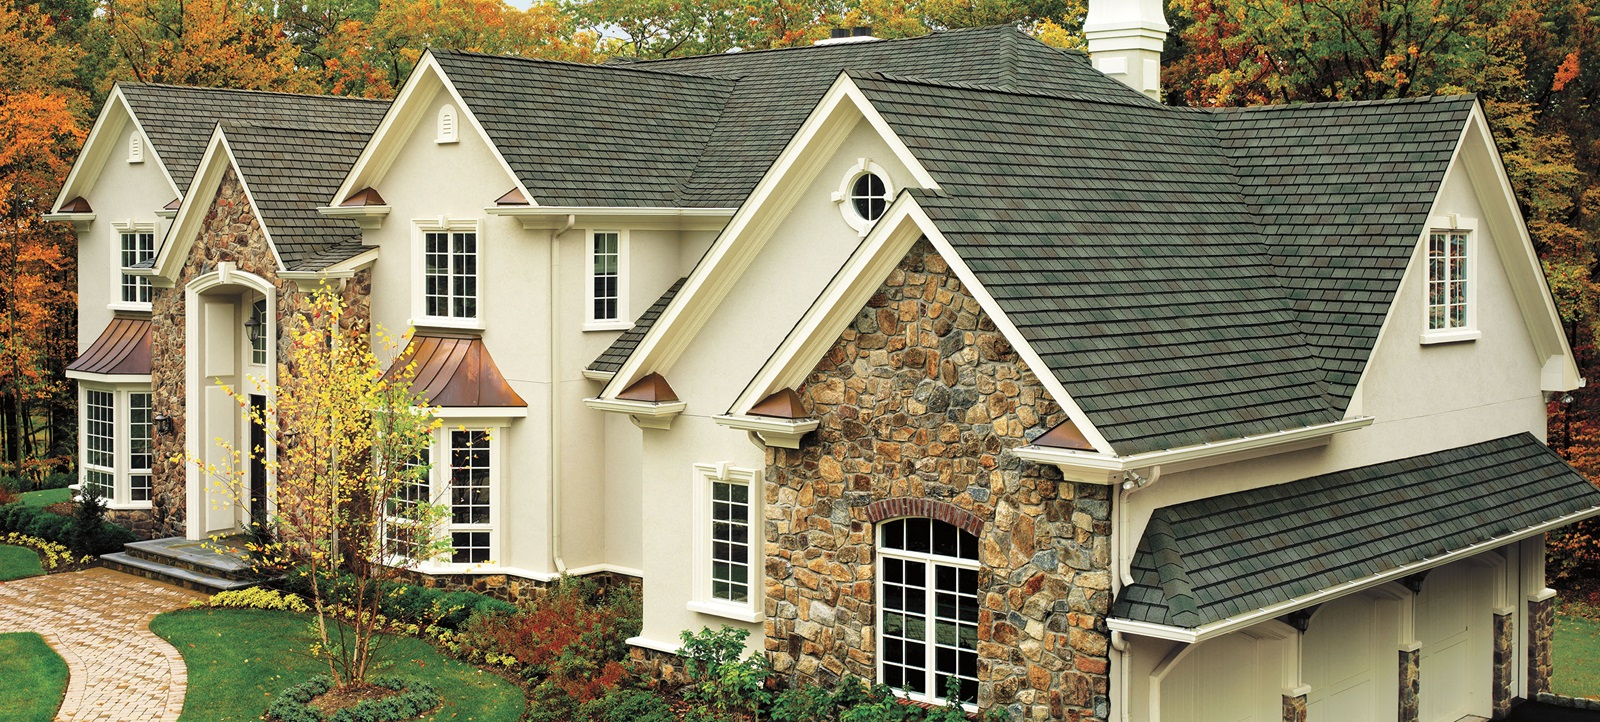 Slateline Roof Shingle Lifetime Designer Roofing Shingles